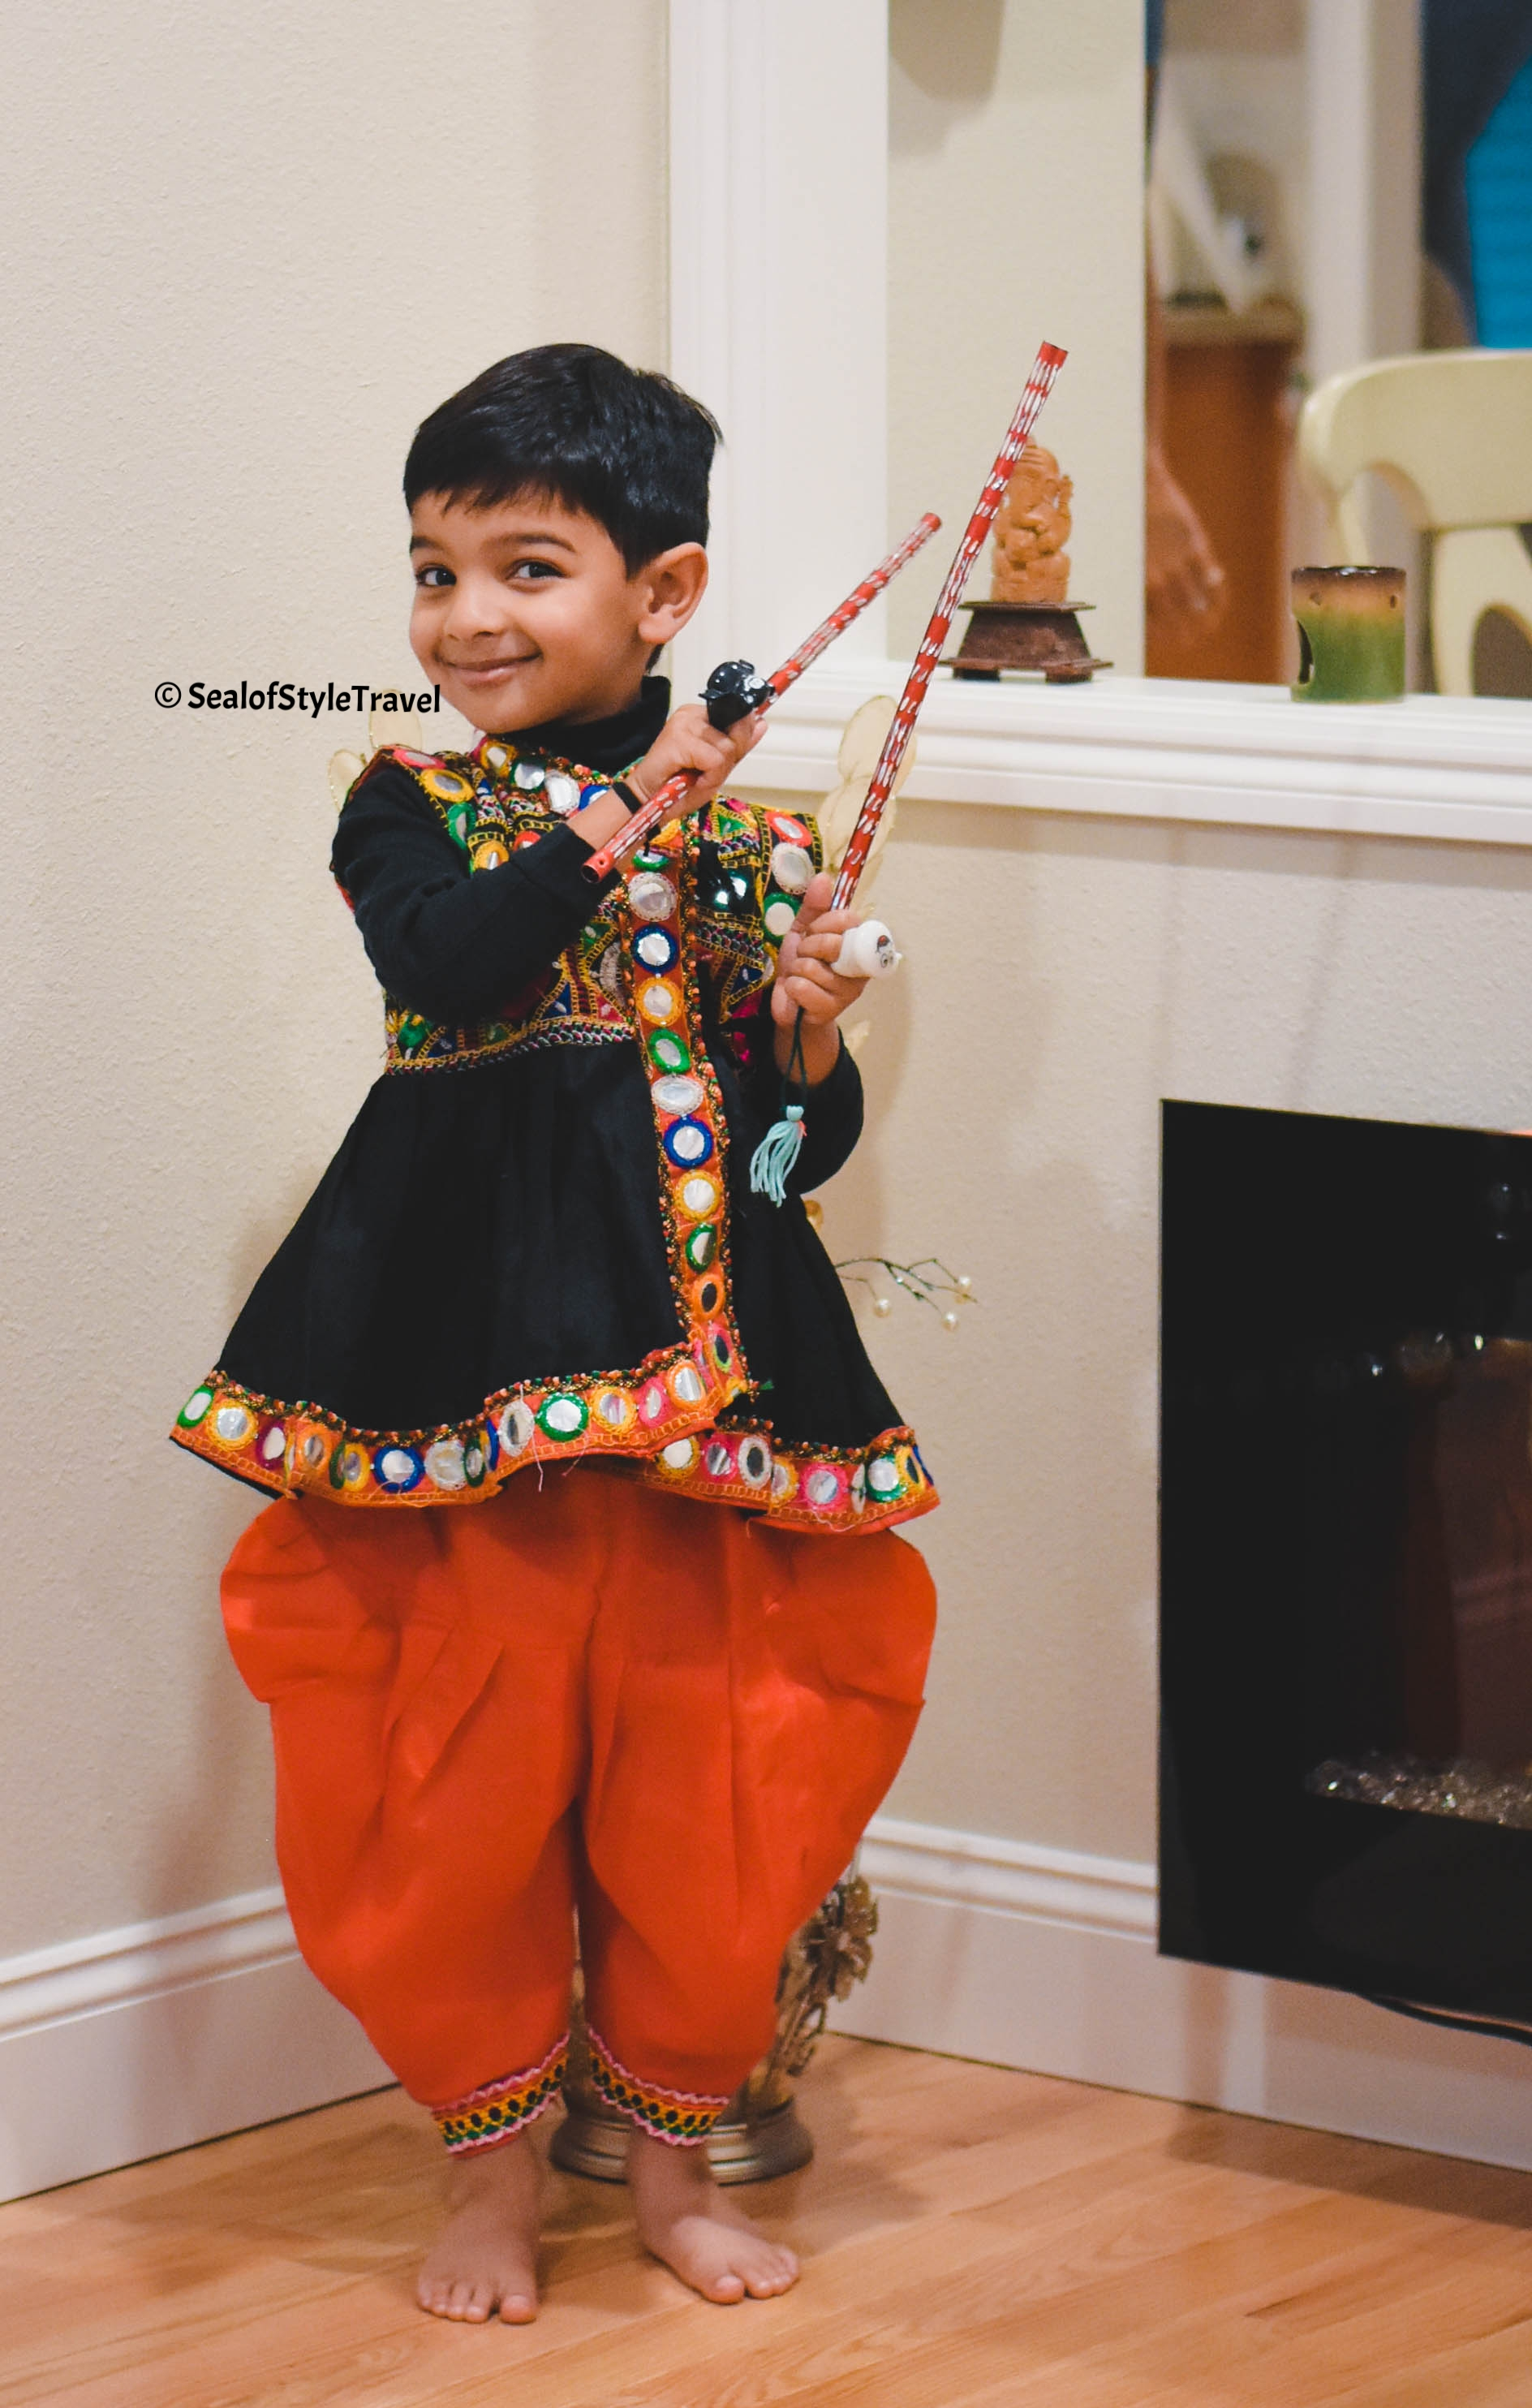 My little monster looking super cute in traditional outfit. This was gifted by a dear friend.